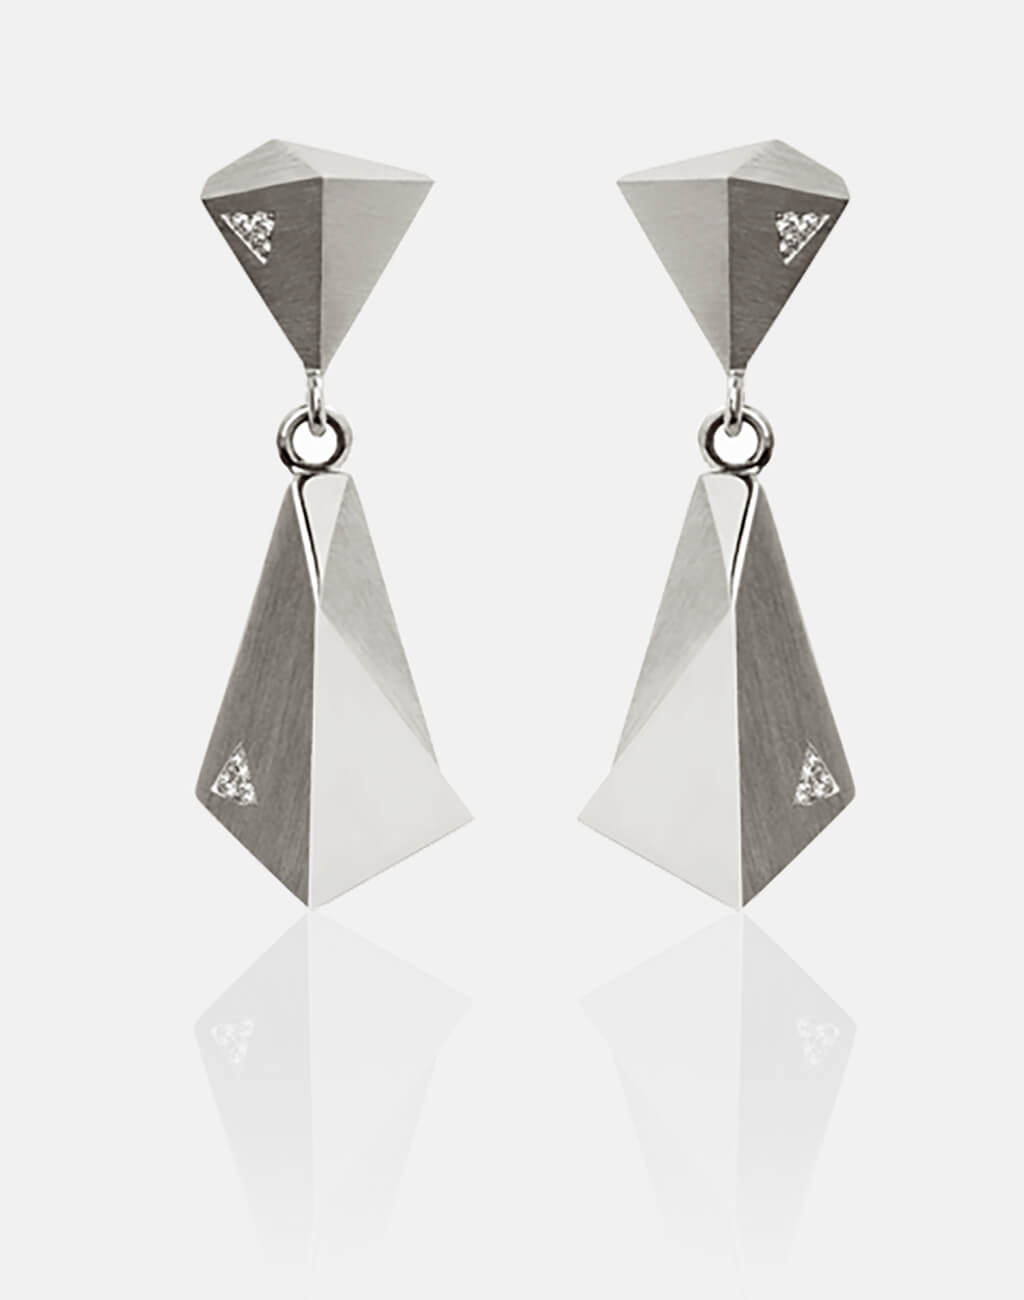 Stealth | Ohrringe, Ohrhänger - 950 Platin, 60 Diamanten-Brillanten | earrings - platinum, 60 diamonds | SYNO-Schmuck.com